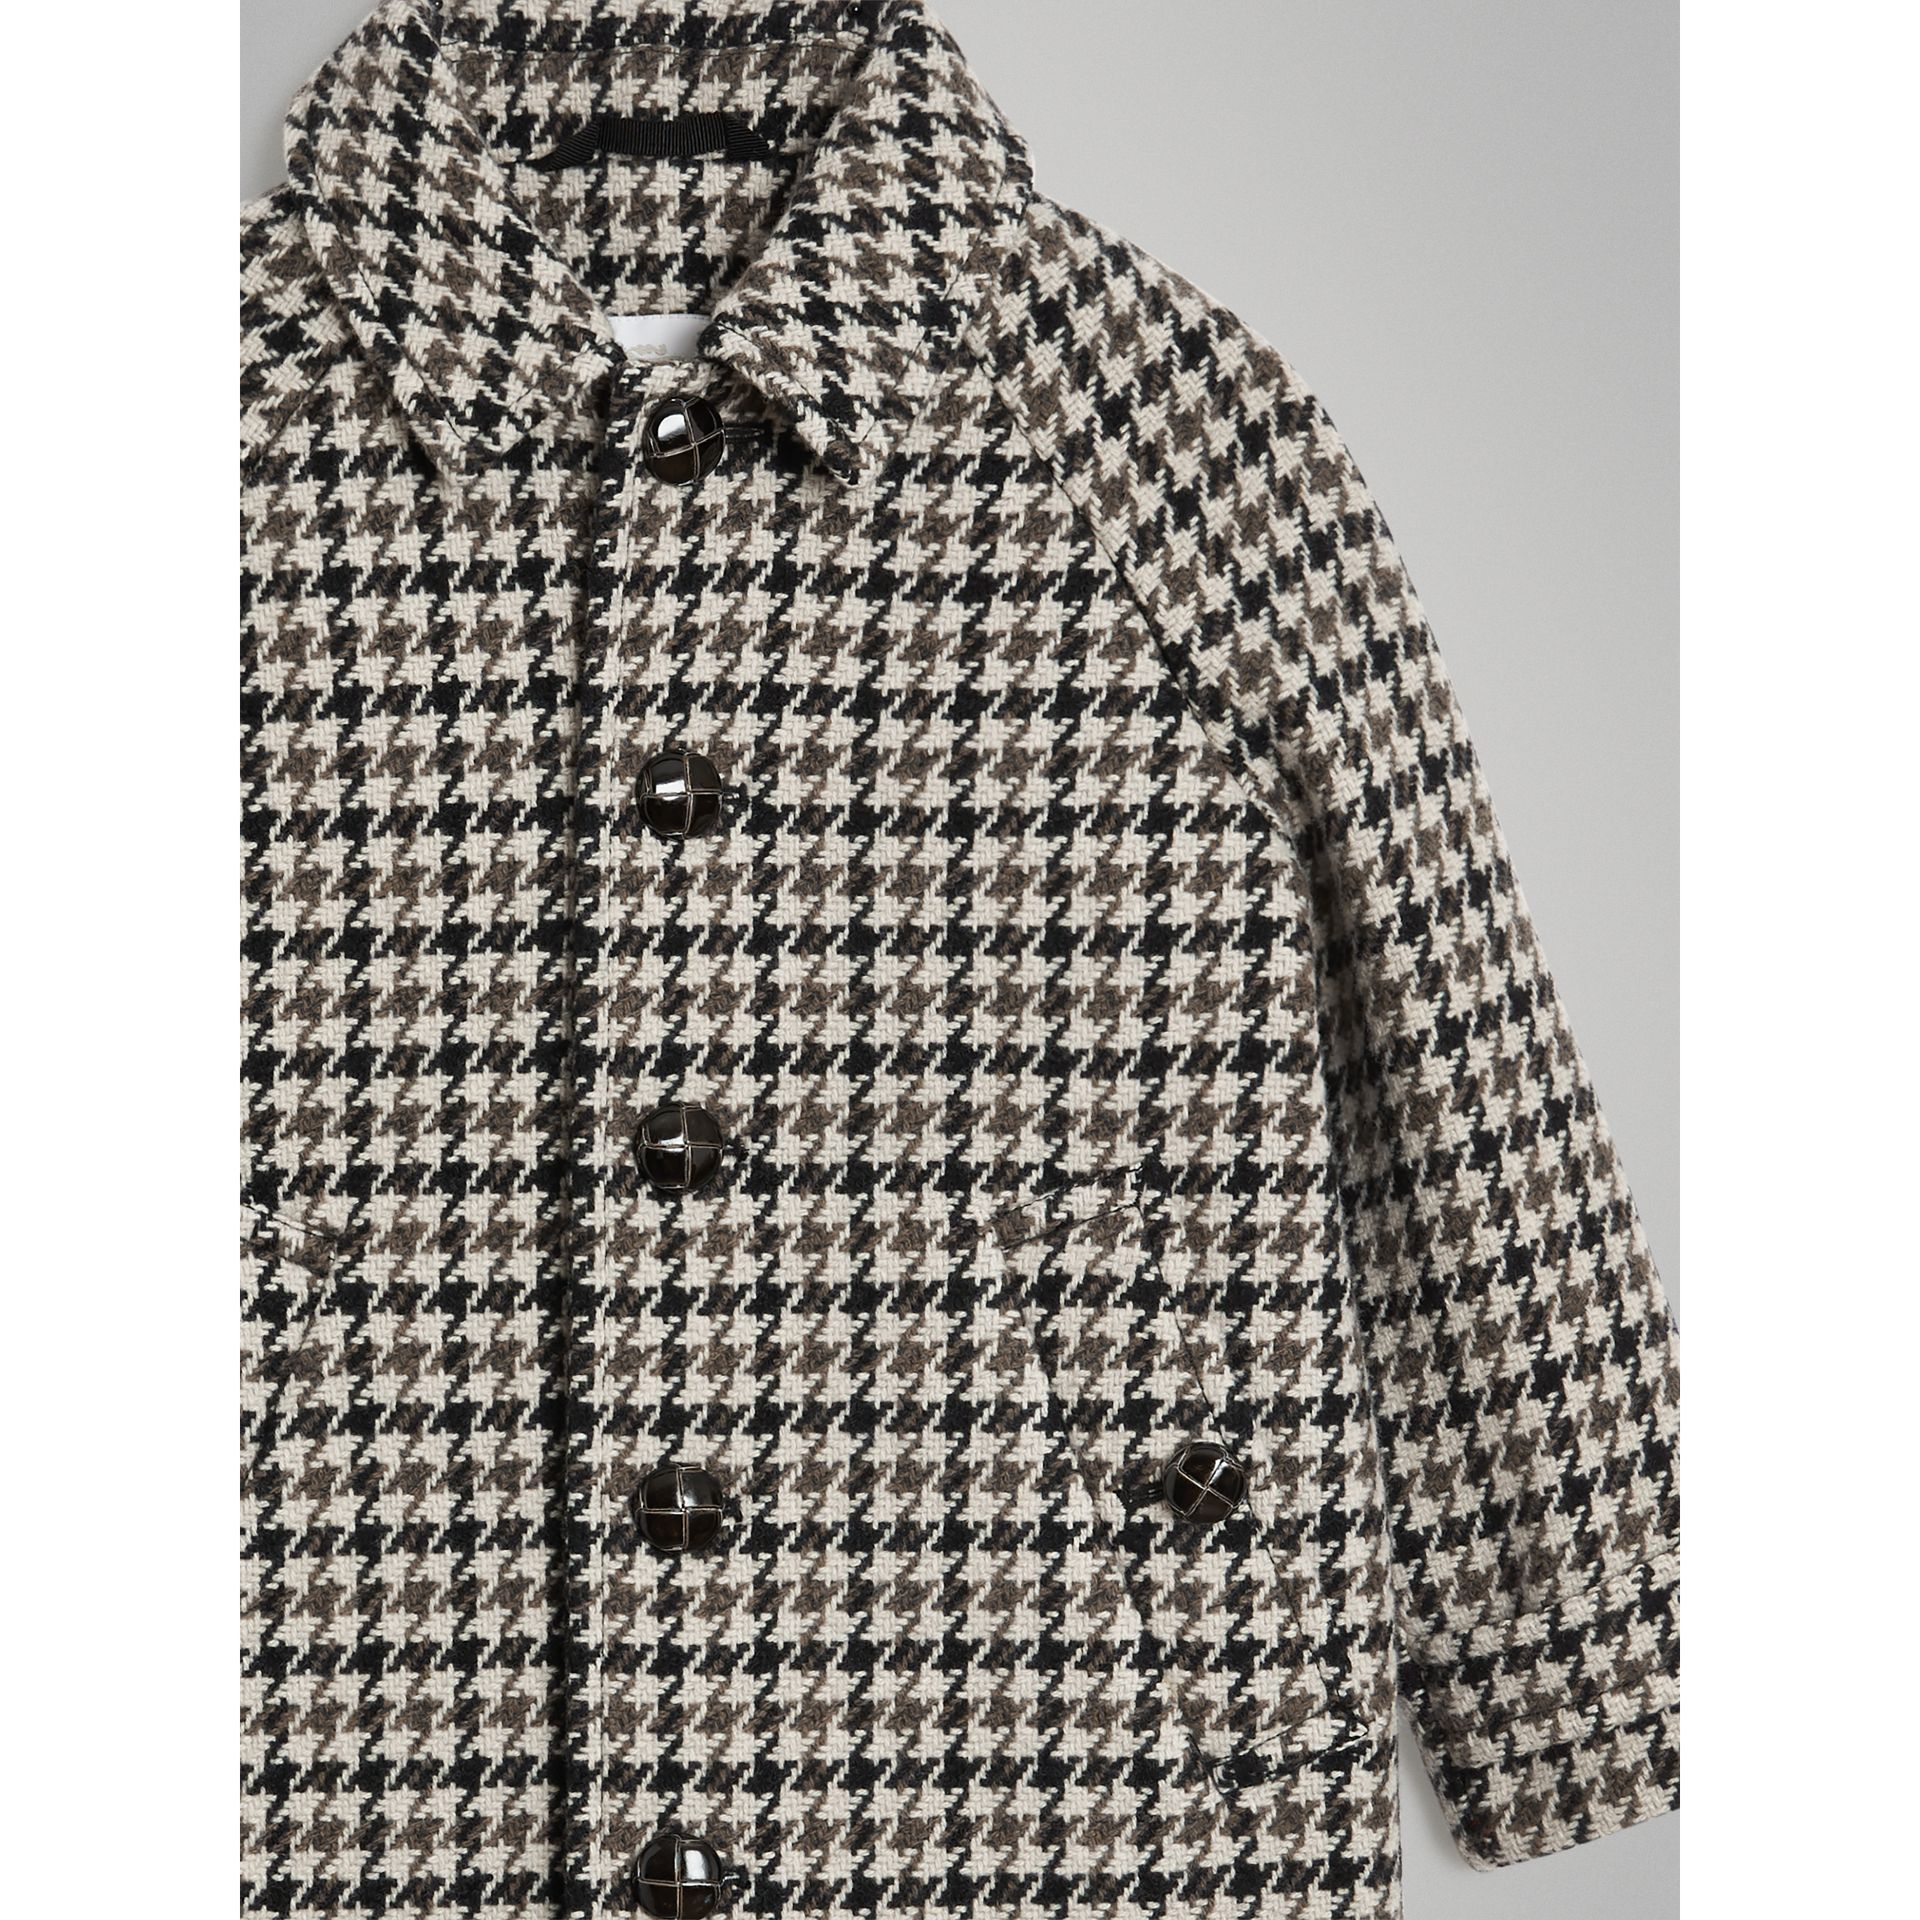 Houndstooth Check Wool Cashmere Blend Coat in Mid Grey | Burberry United States - gallery image 5